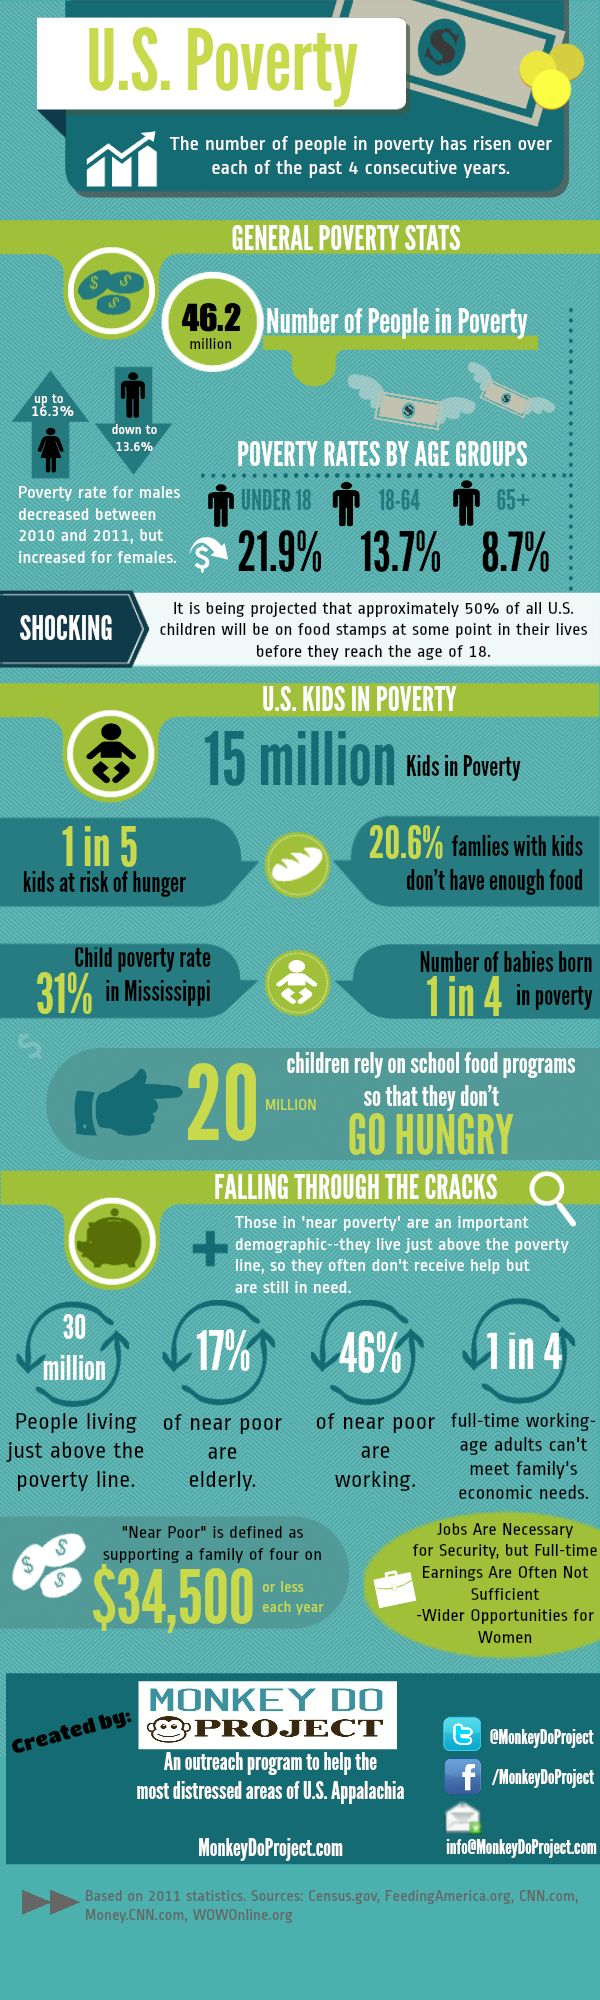 What if people aren't poor enough for you to help? U.S. Poverty Infographic #poverty #infographic